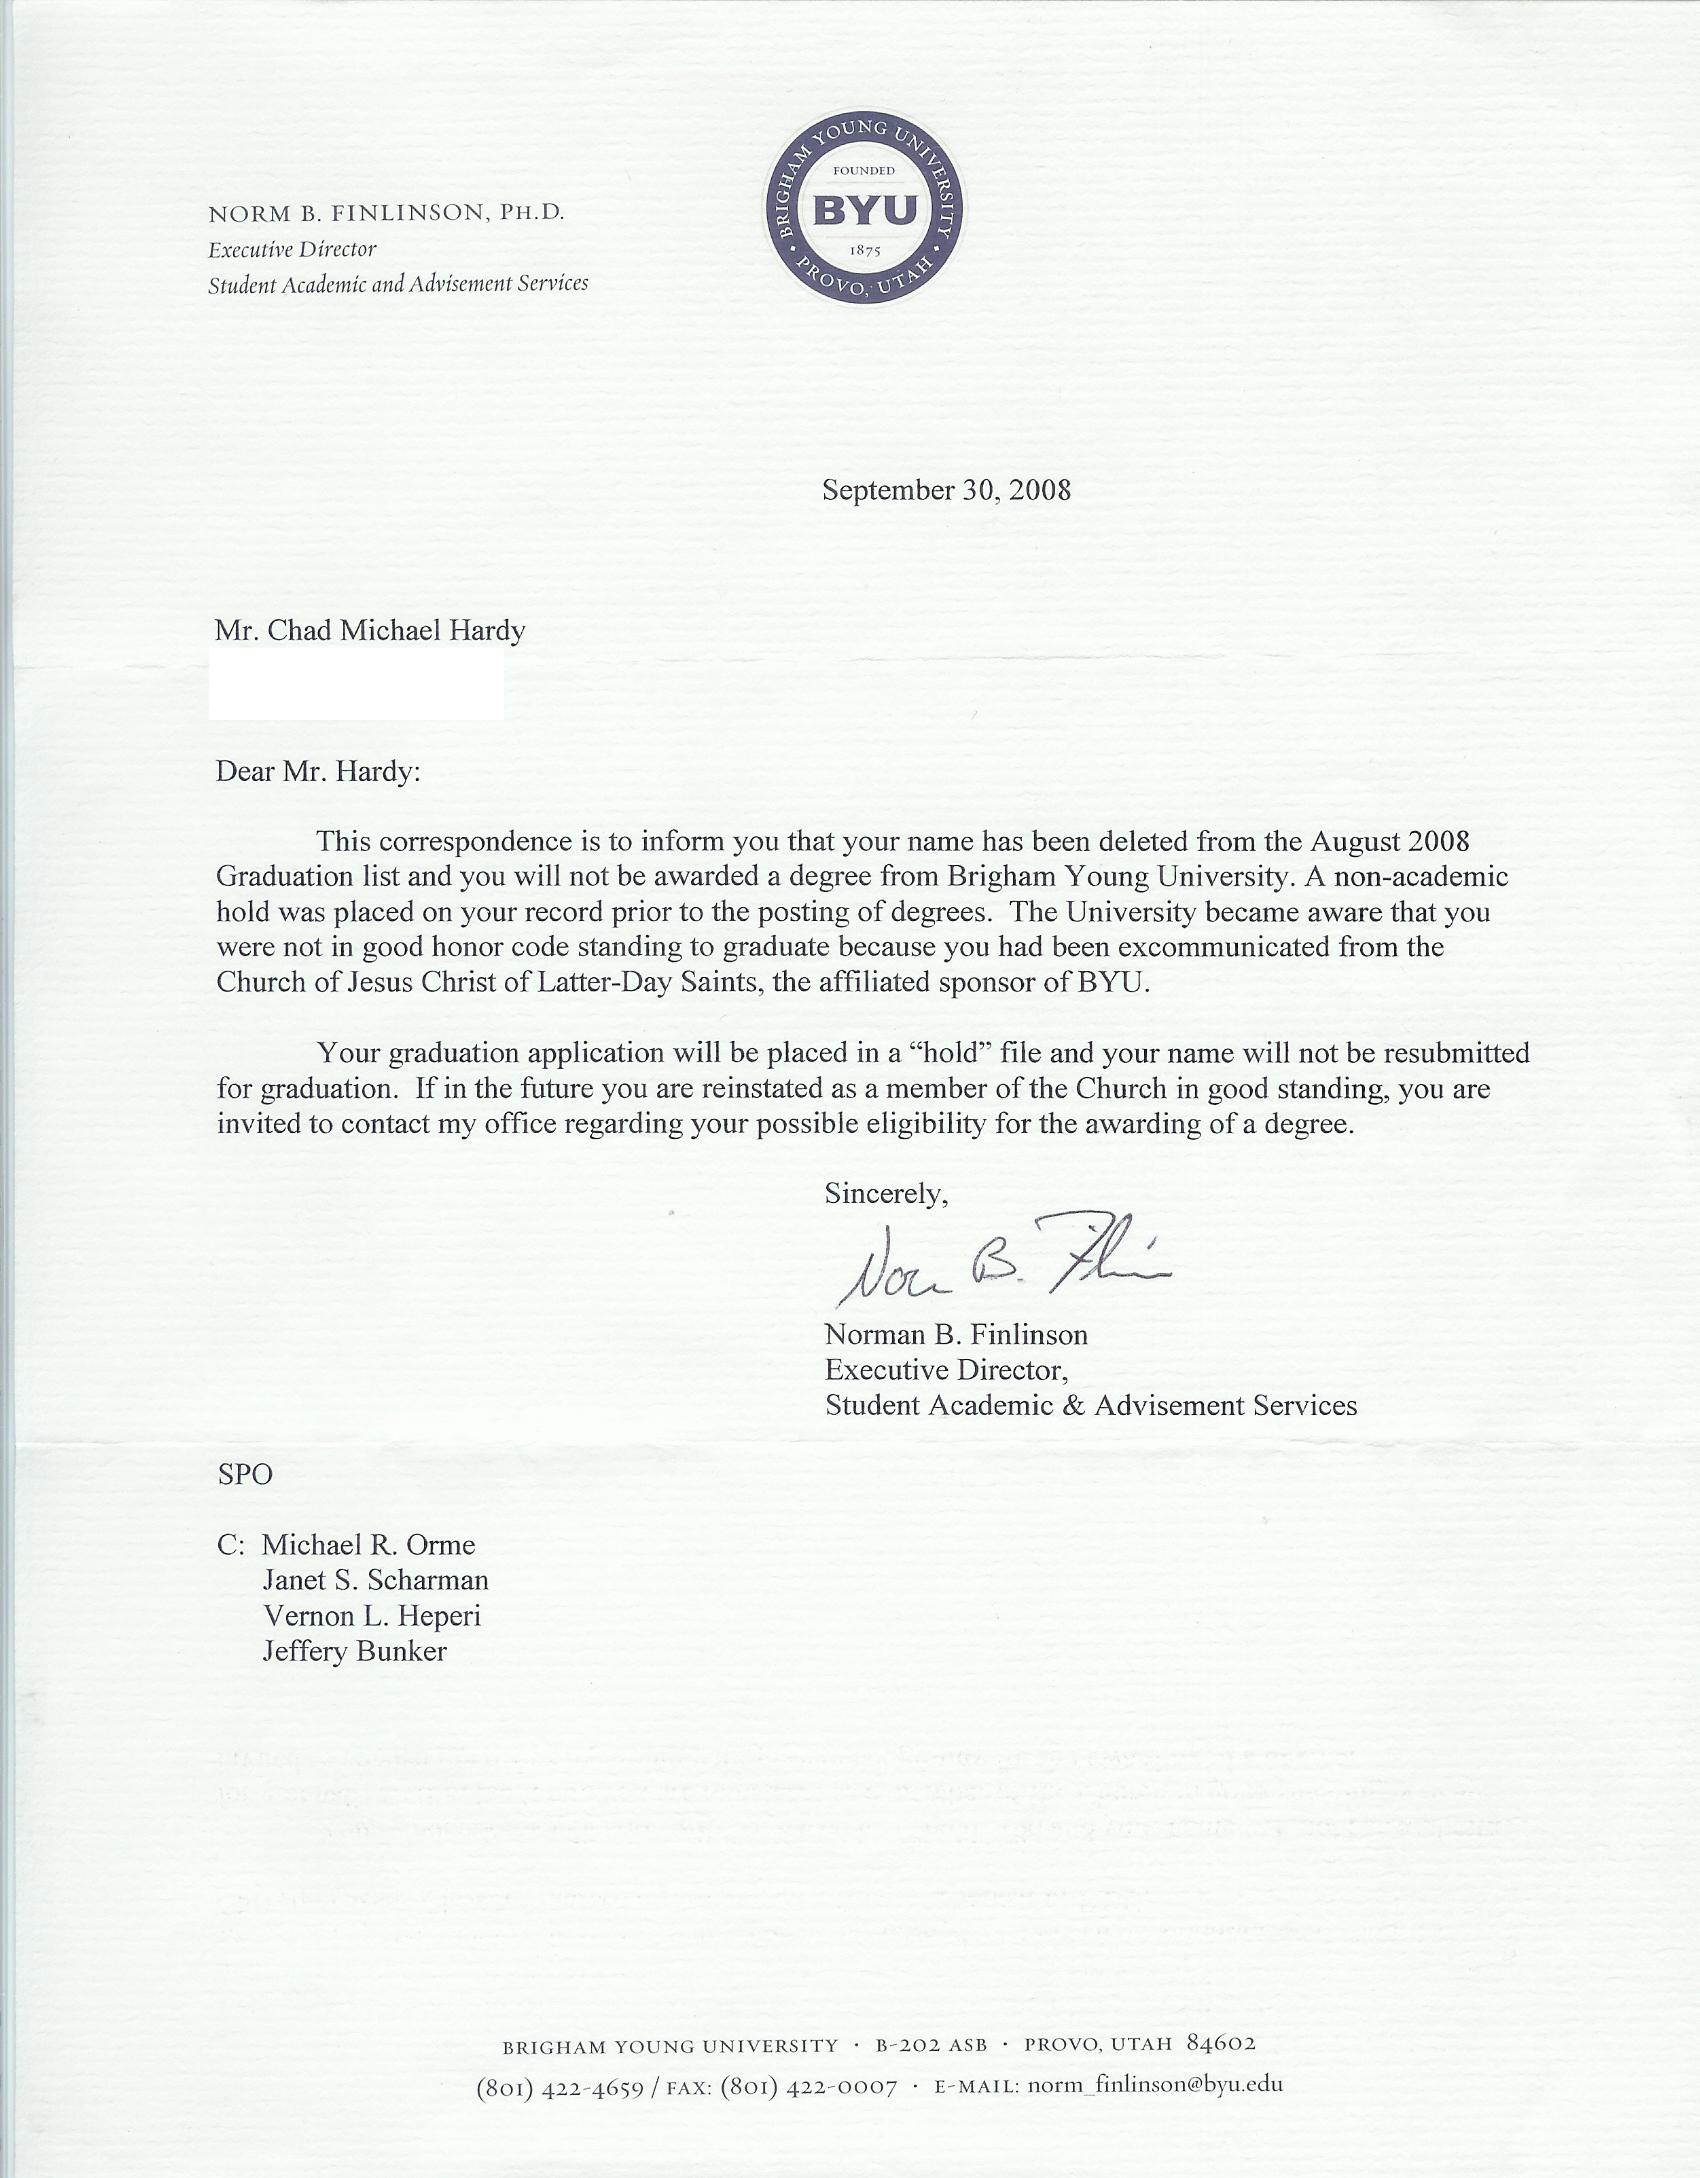 Graduation Deletion Letter from BYU | Open Shirts, Open Minds